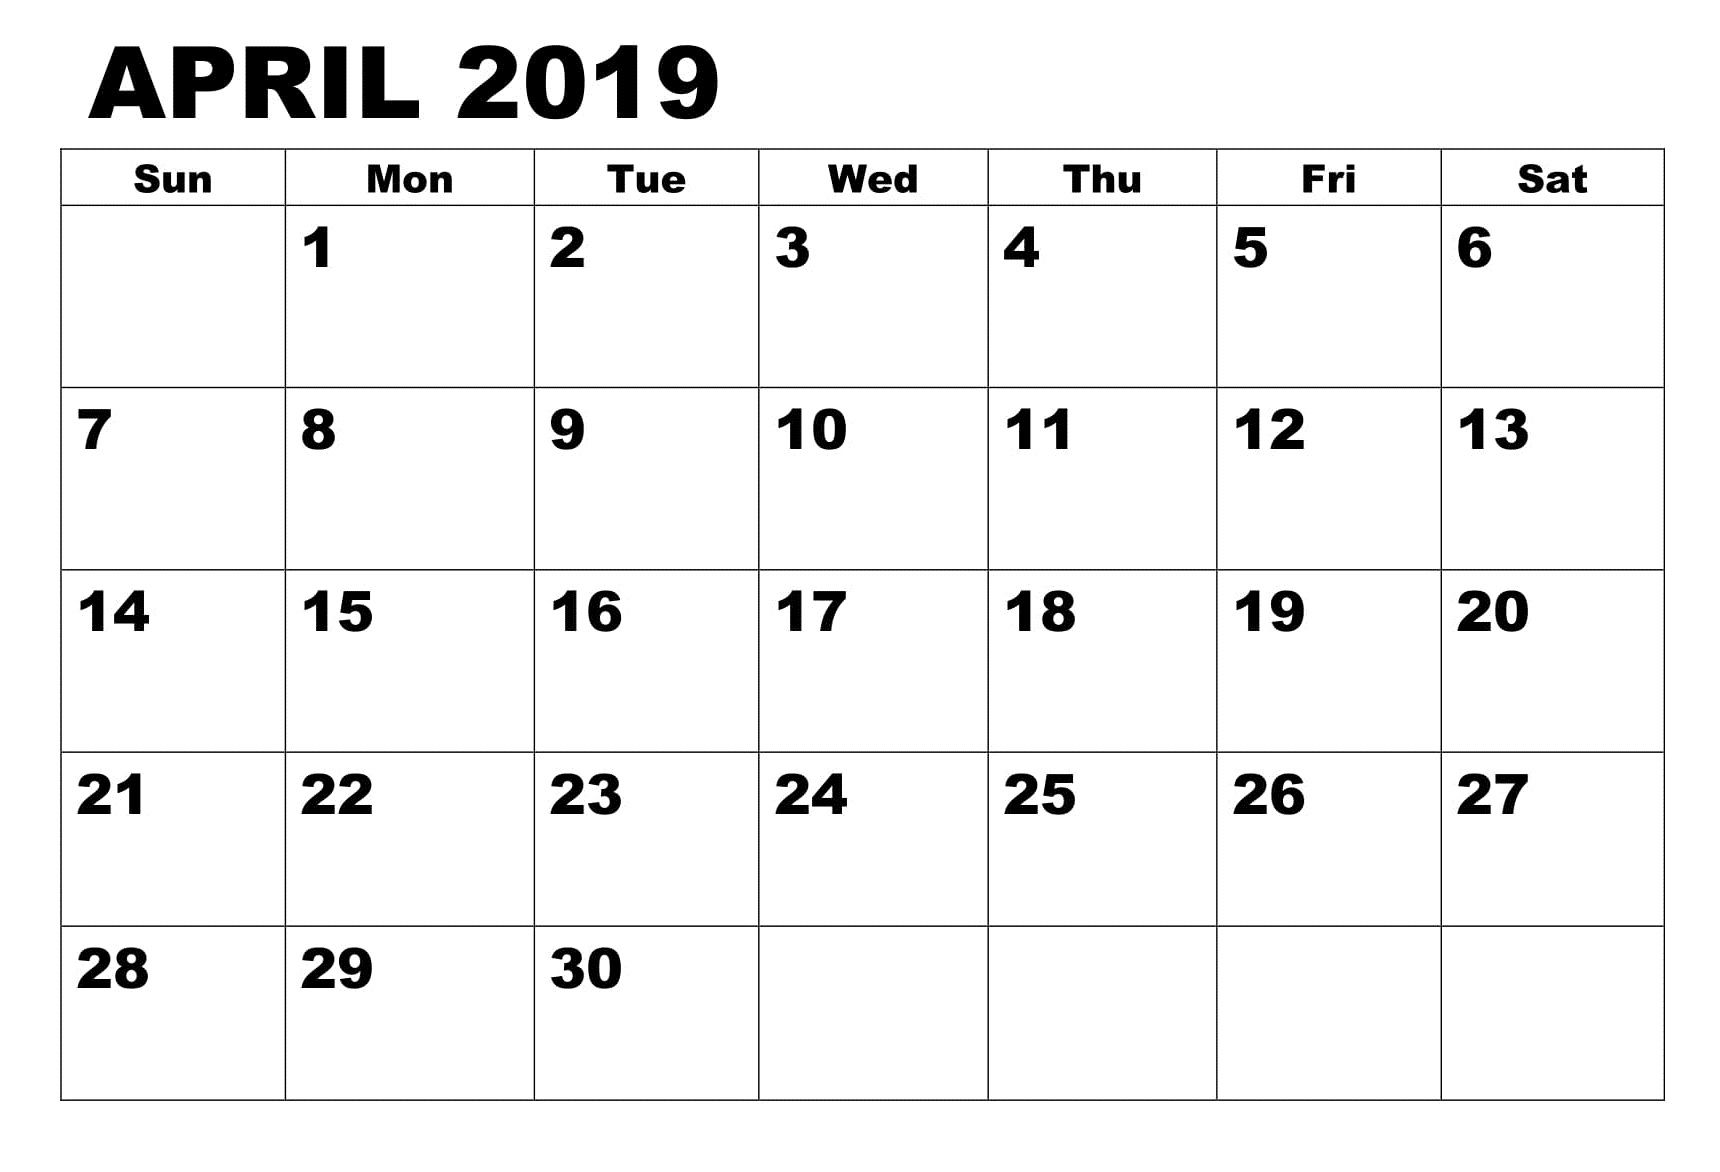 Lunar Calendar For April 2019 Printable Pdf Blank Download